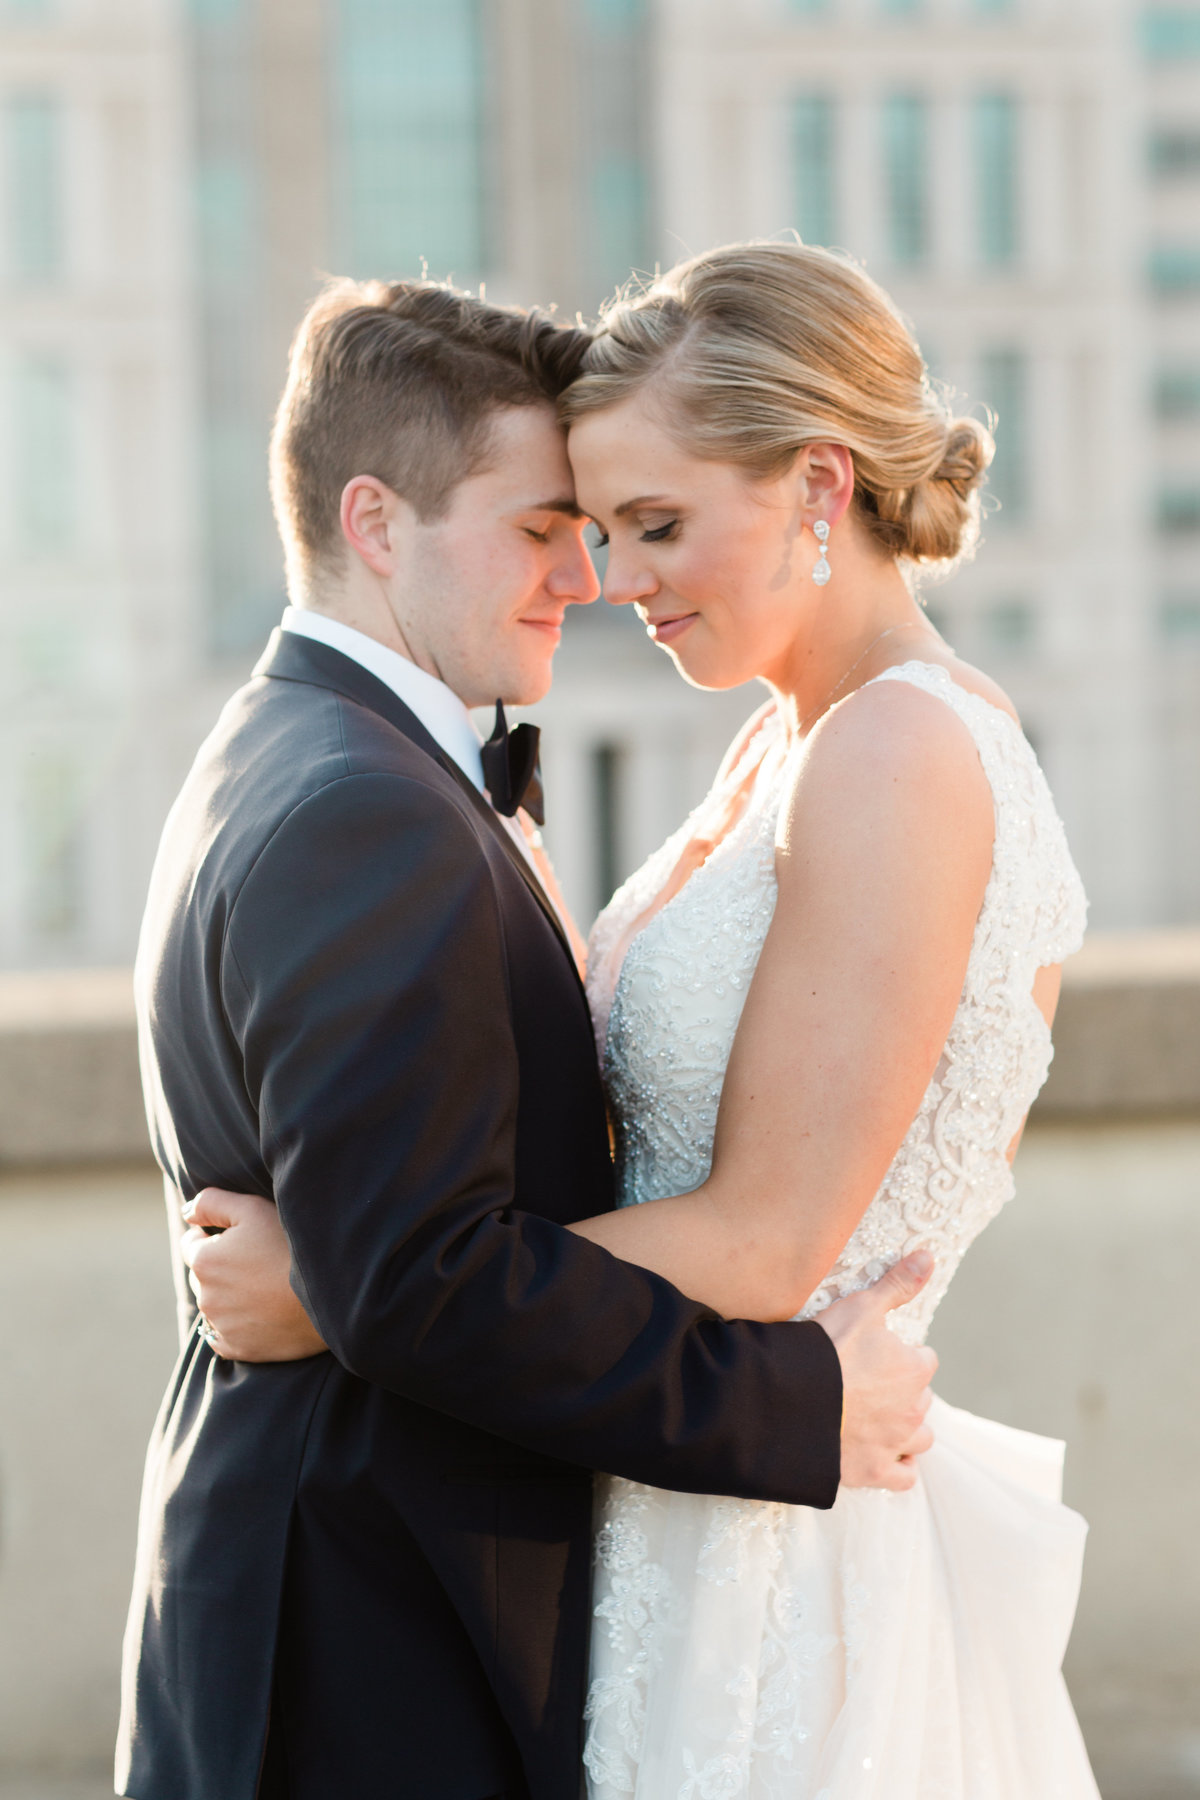 Lindsey-Taylor-Photography-St-Louis-Downtown-Wedding-19